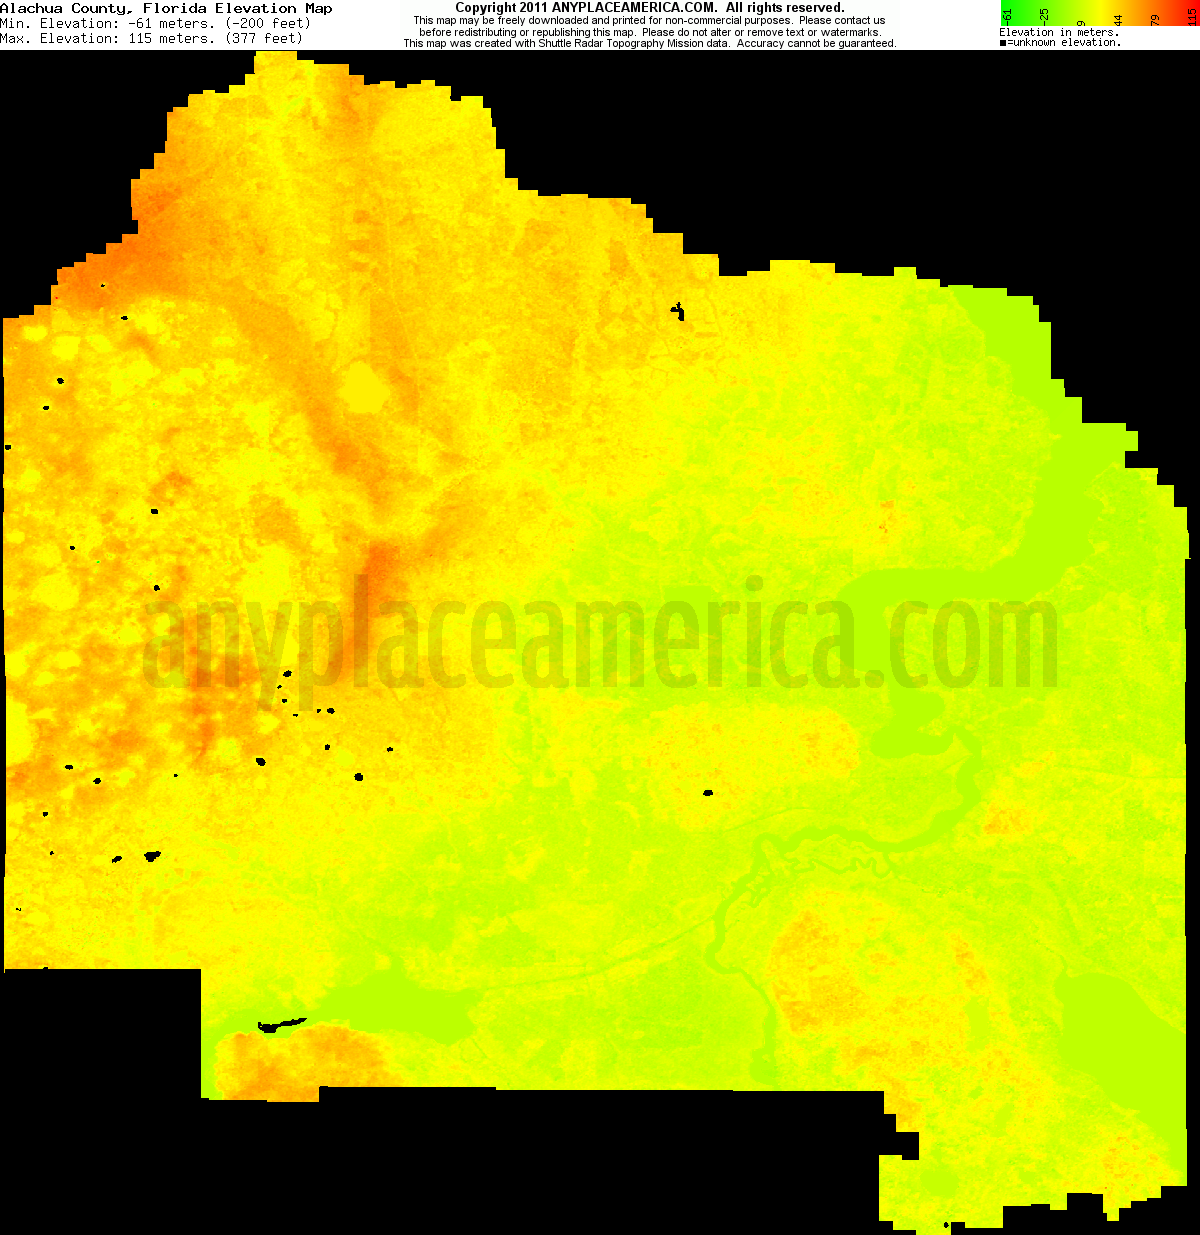 Download Alachua County Elevation Map